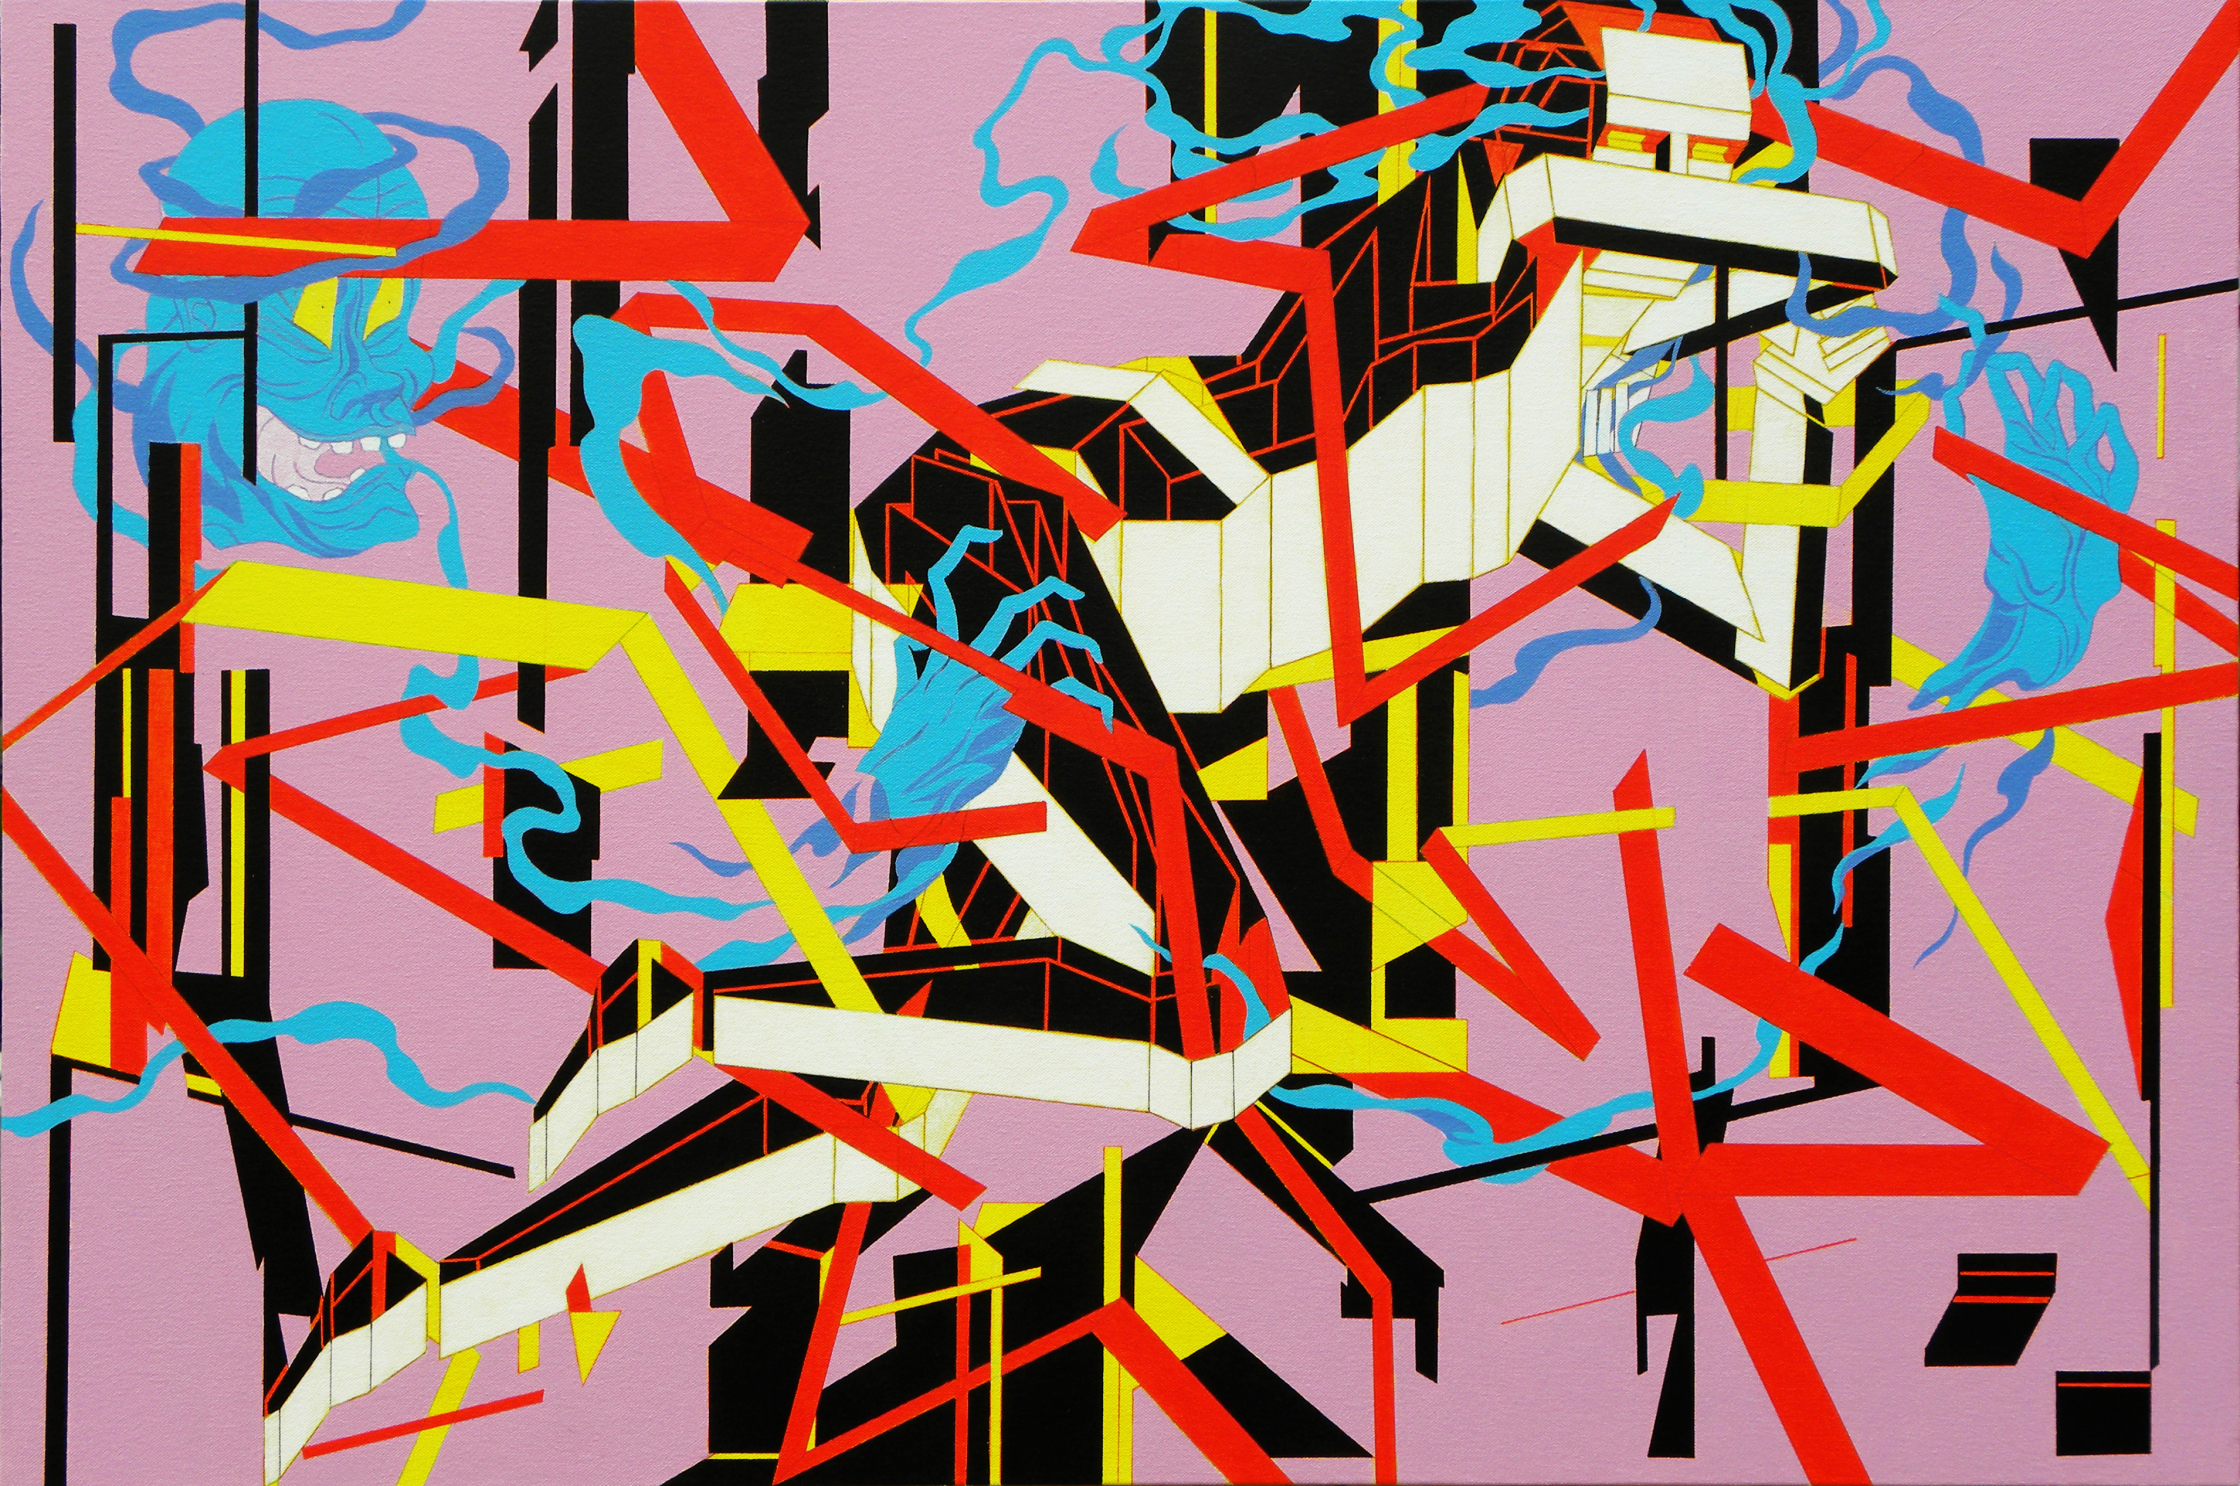 Fight or Flight2 - acrylic on canvas - 91 x 61 cm.jpg